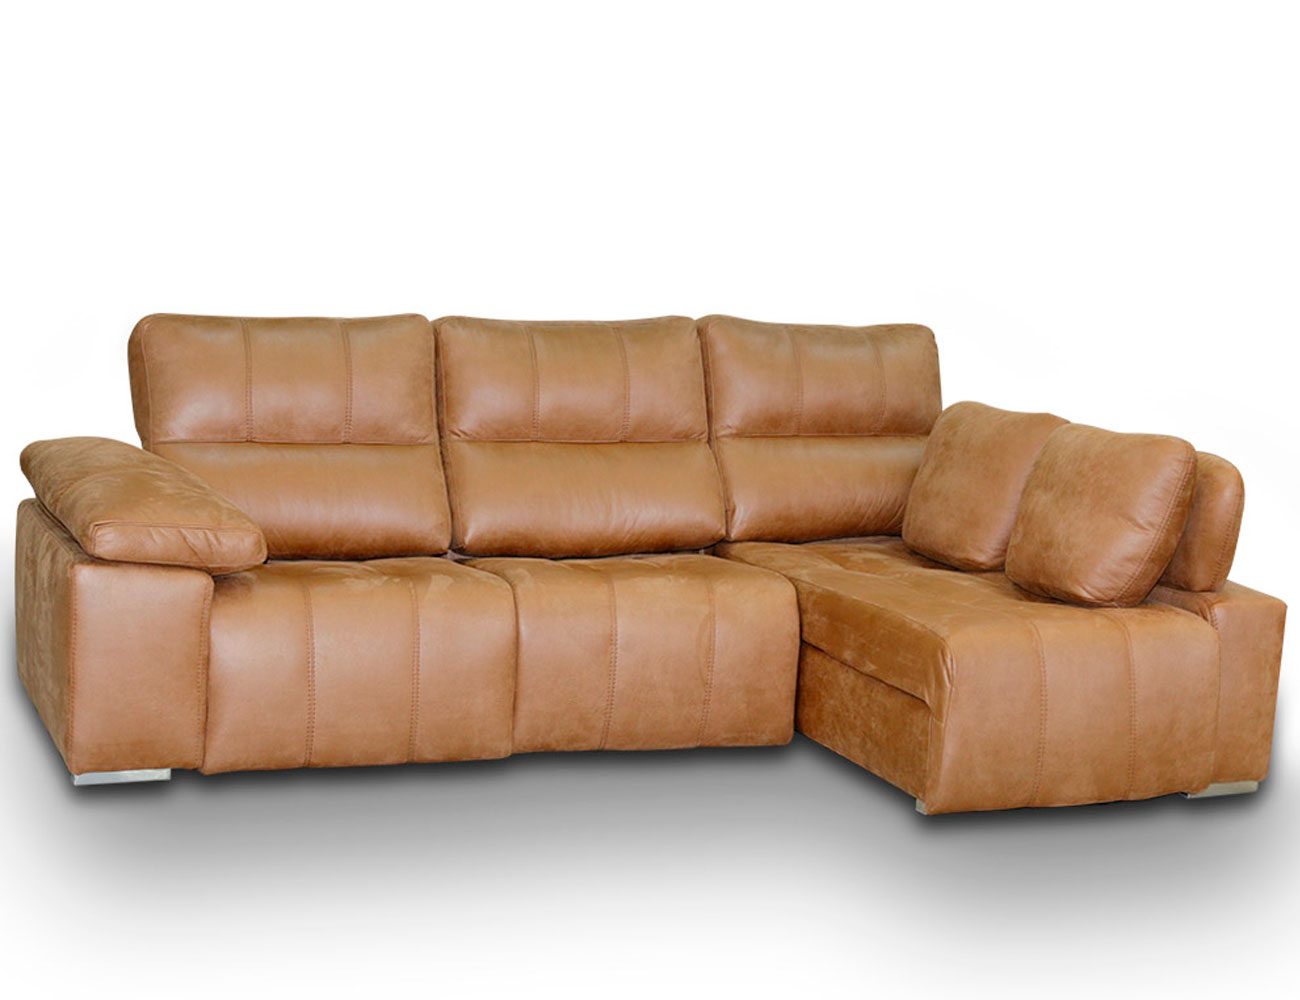 Sofa chaiselongue relax 2 motores anti manchas43